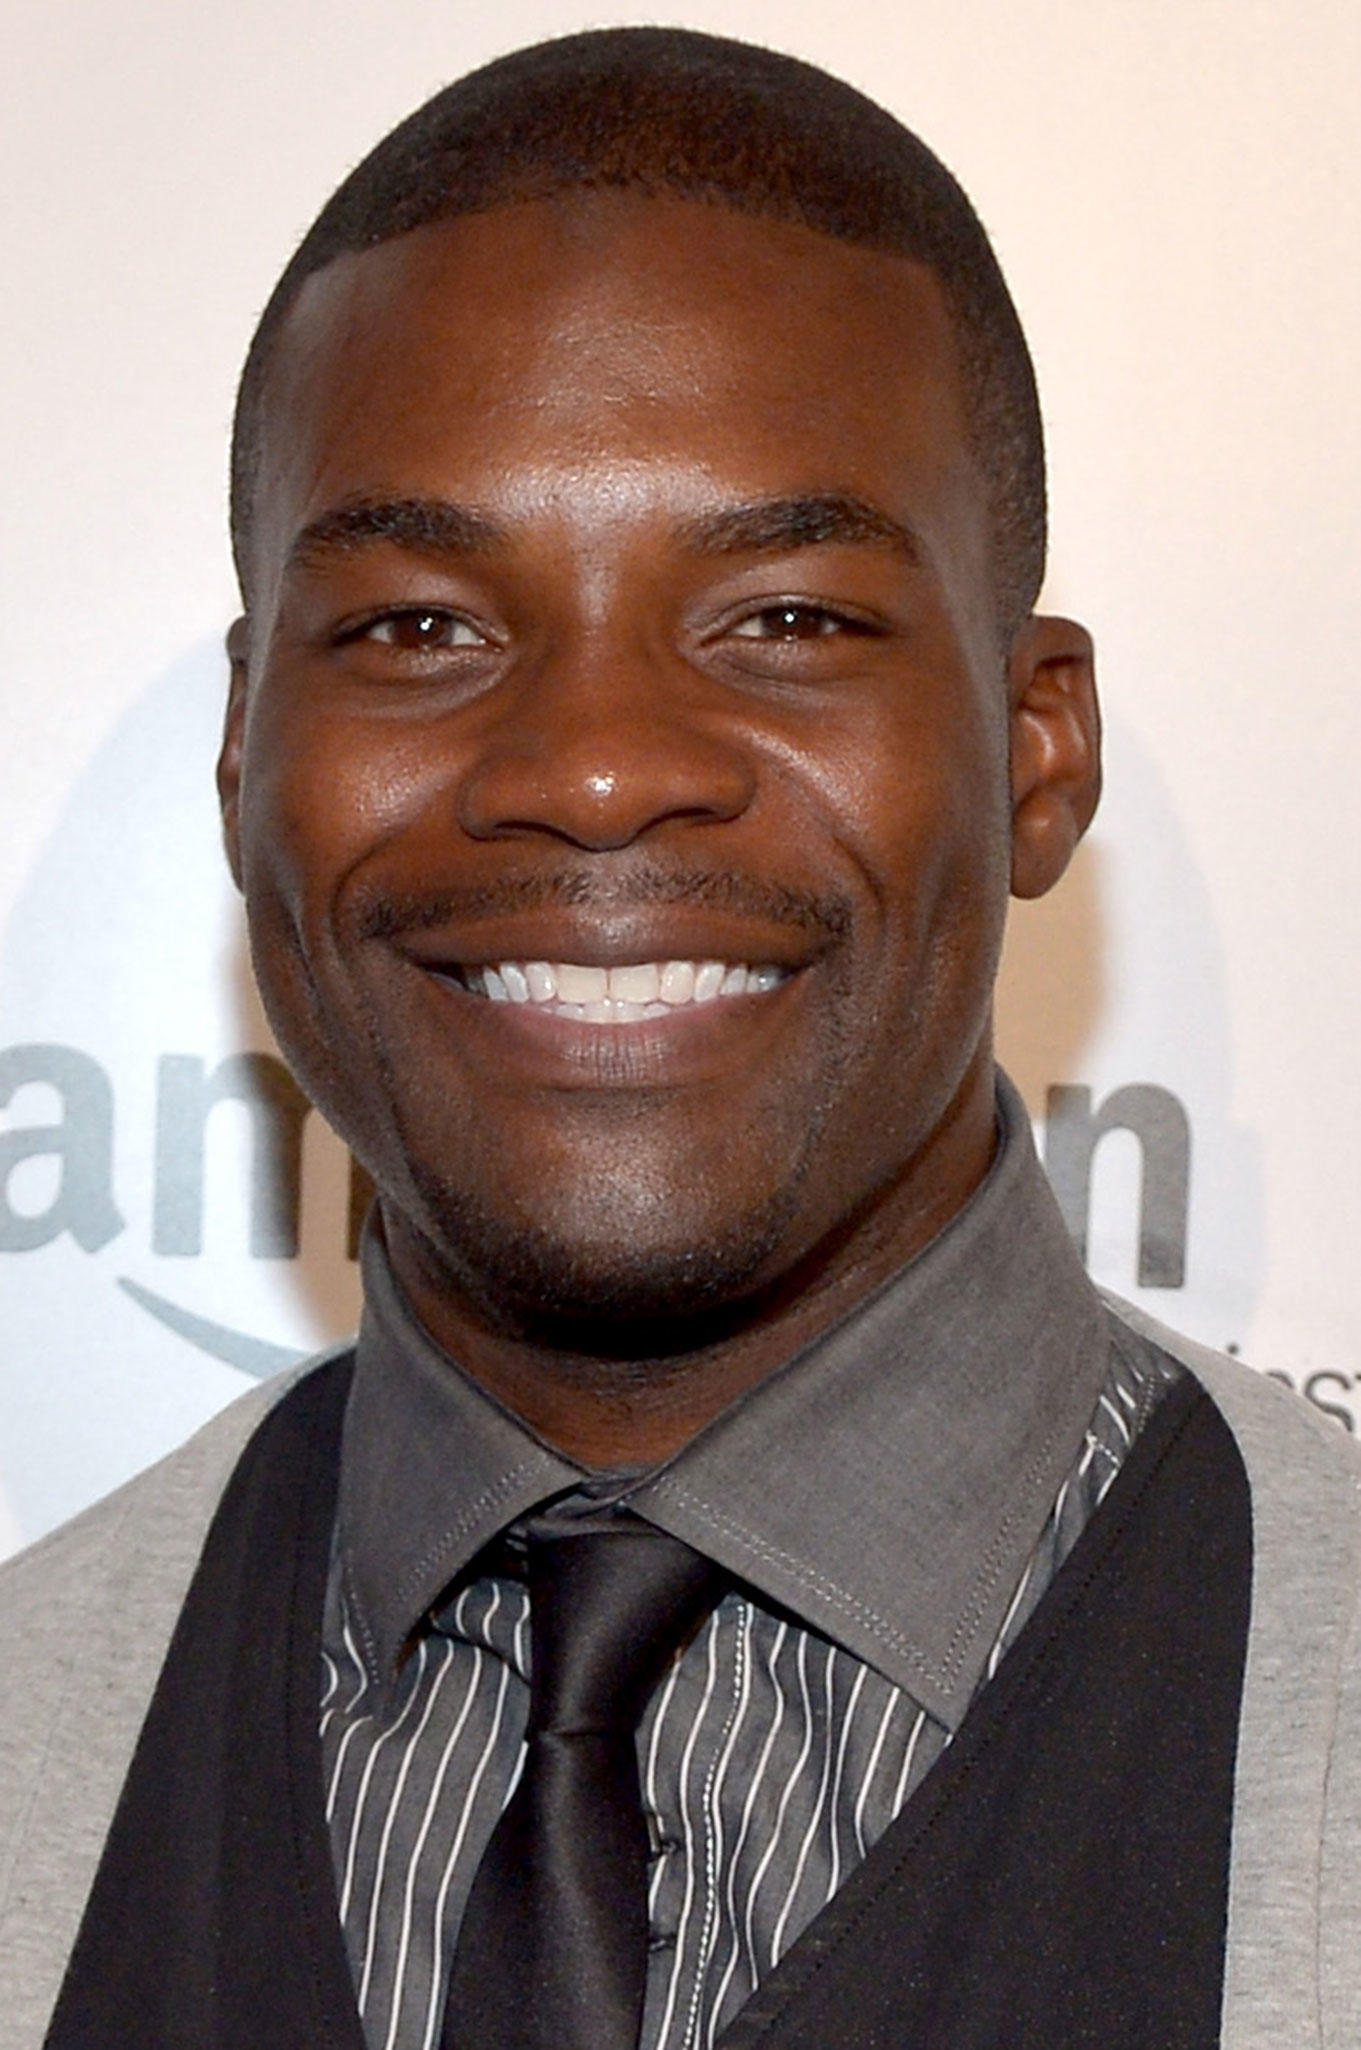 Amin Joseph at the Amazon red carpet premiere screening for